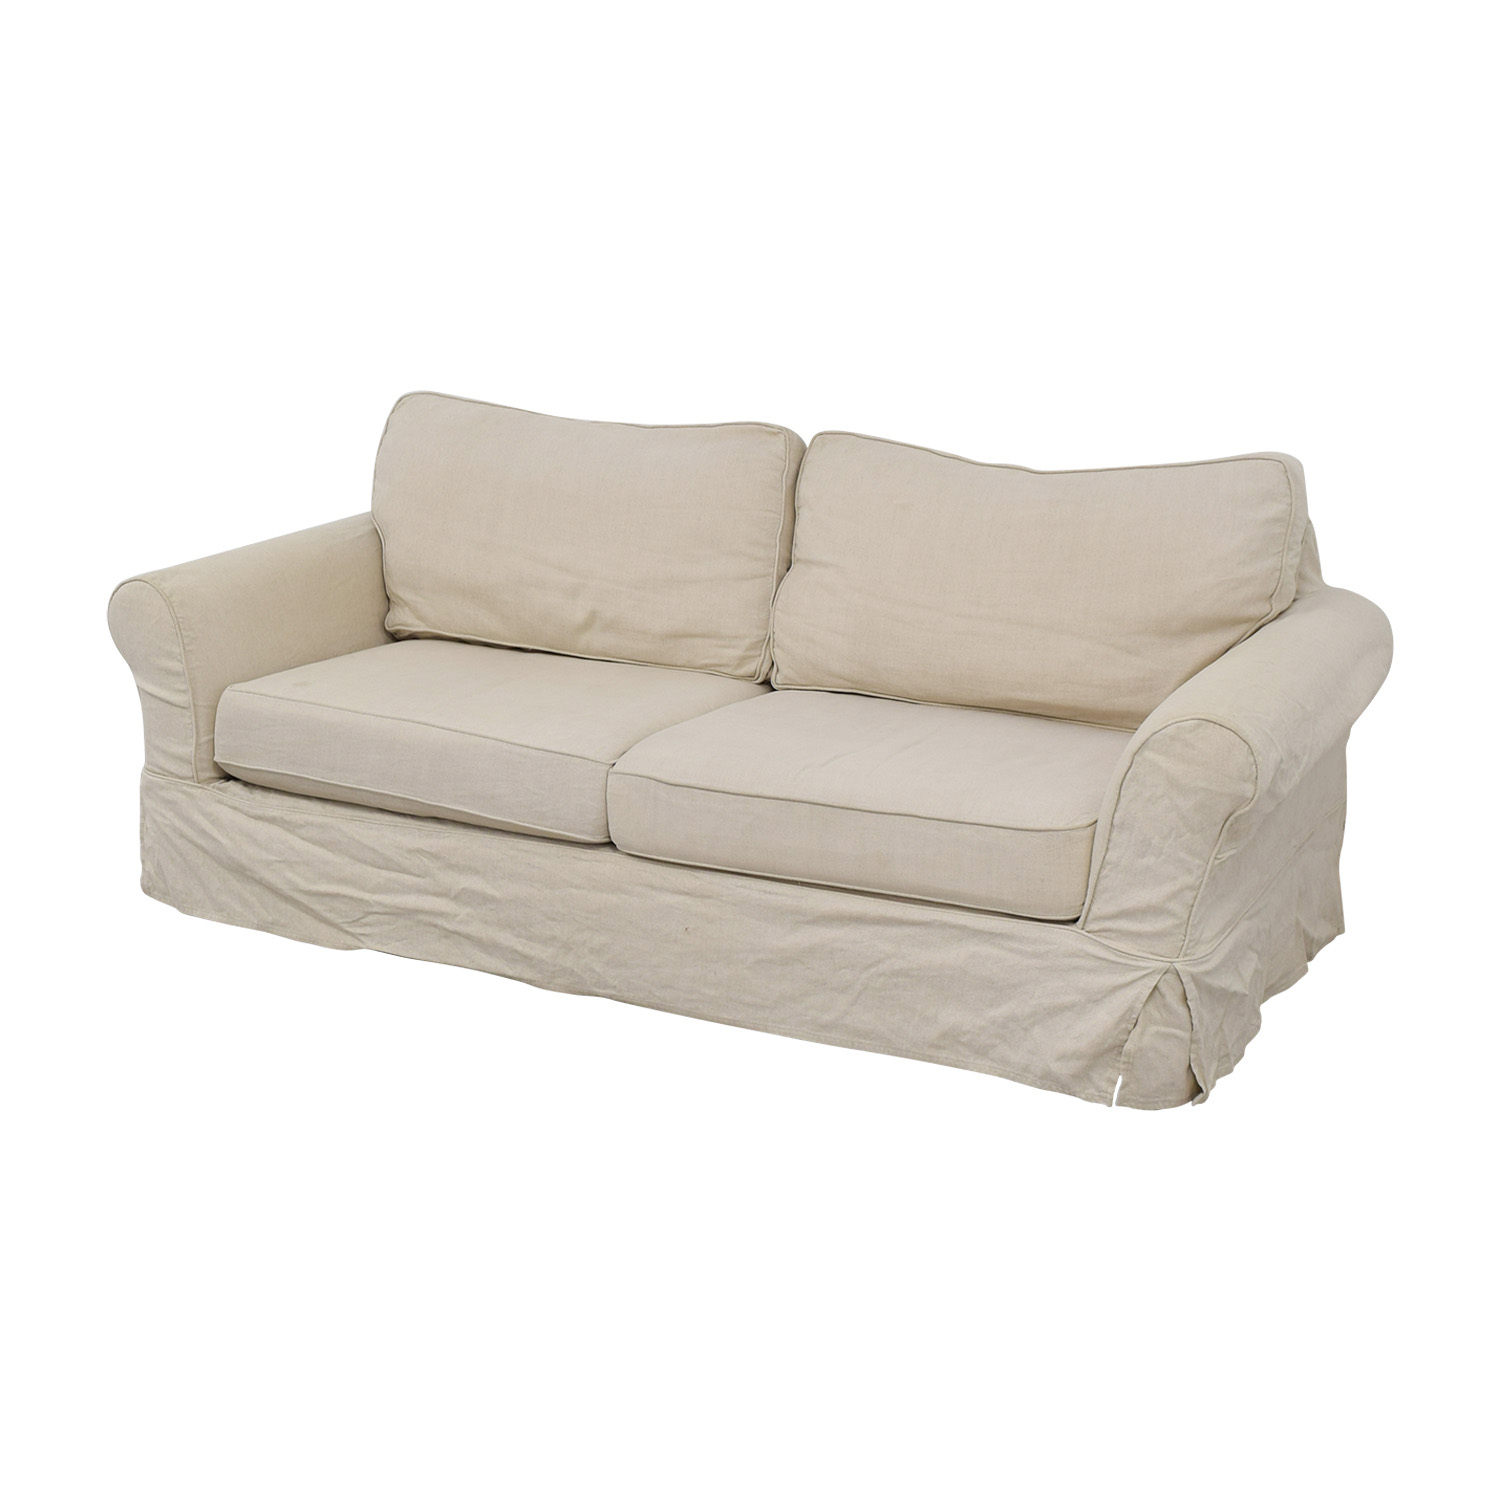 Pottery Barn Pottery Barn Cream Comfort Roll Two-Cushion Sofa second hand